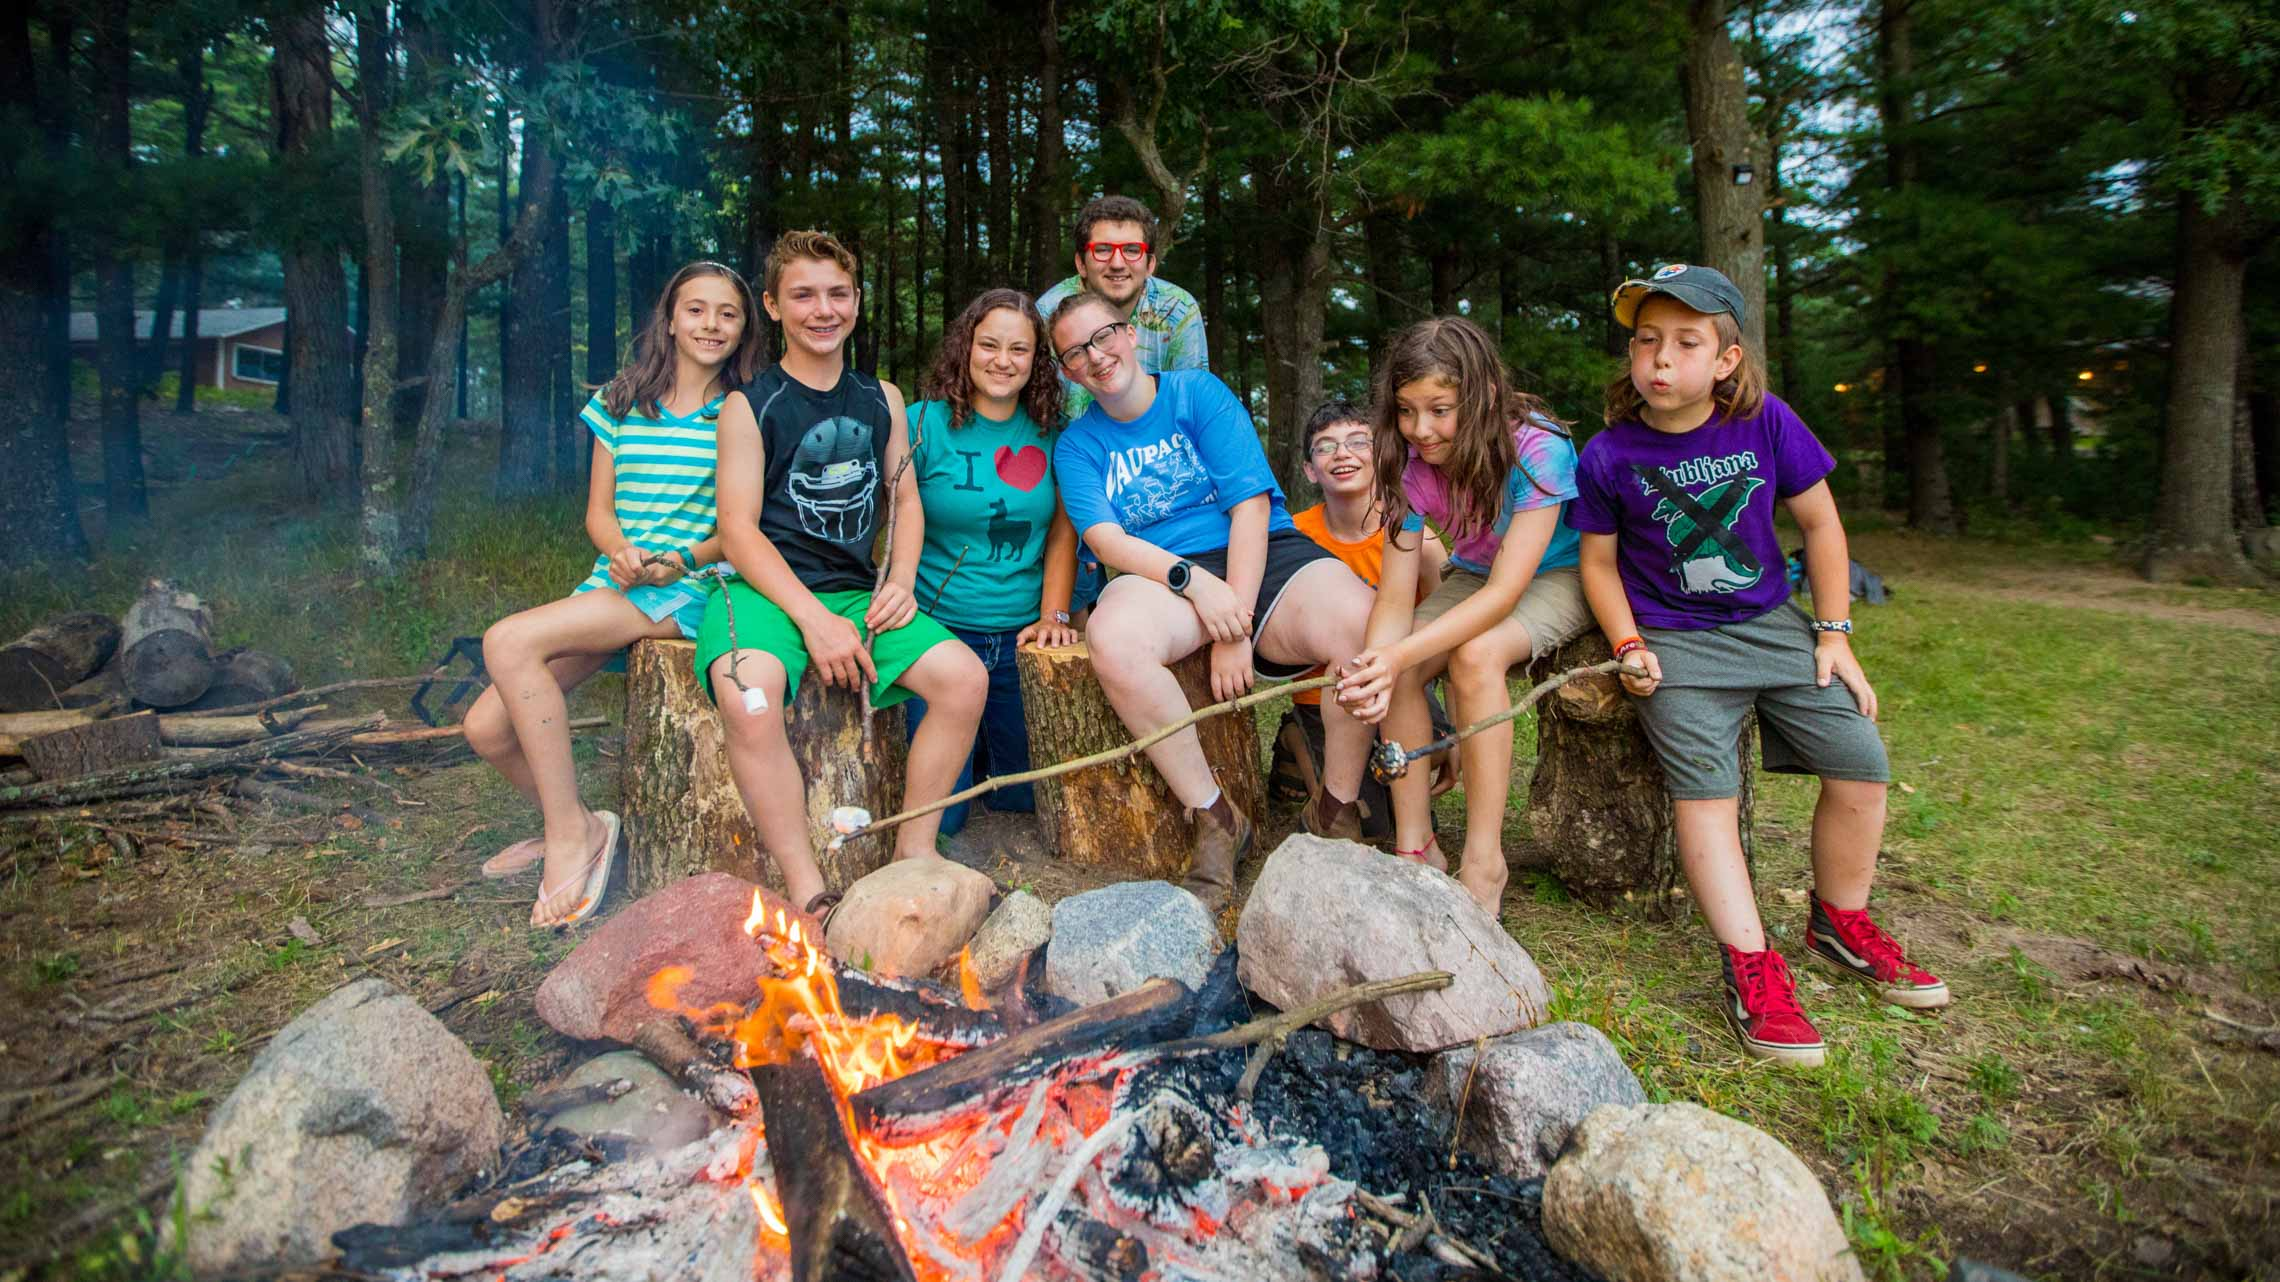 Campers roasting marshmellows by campfire